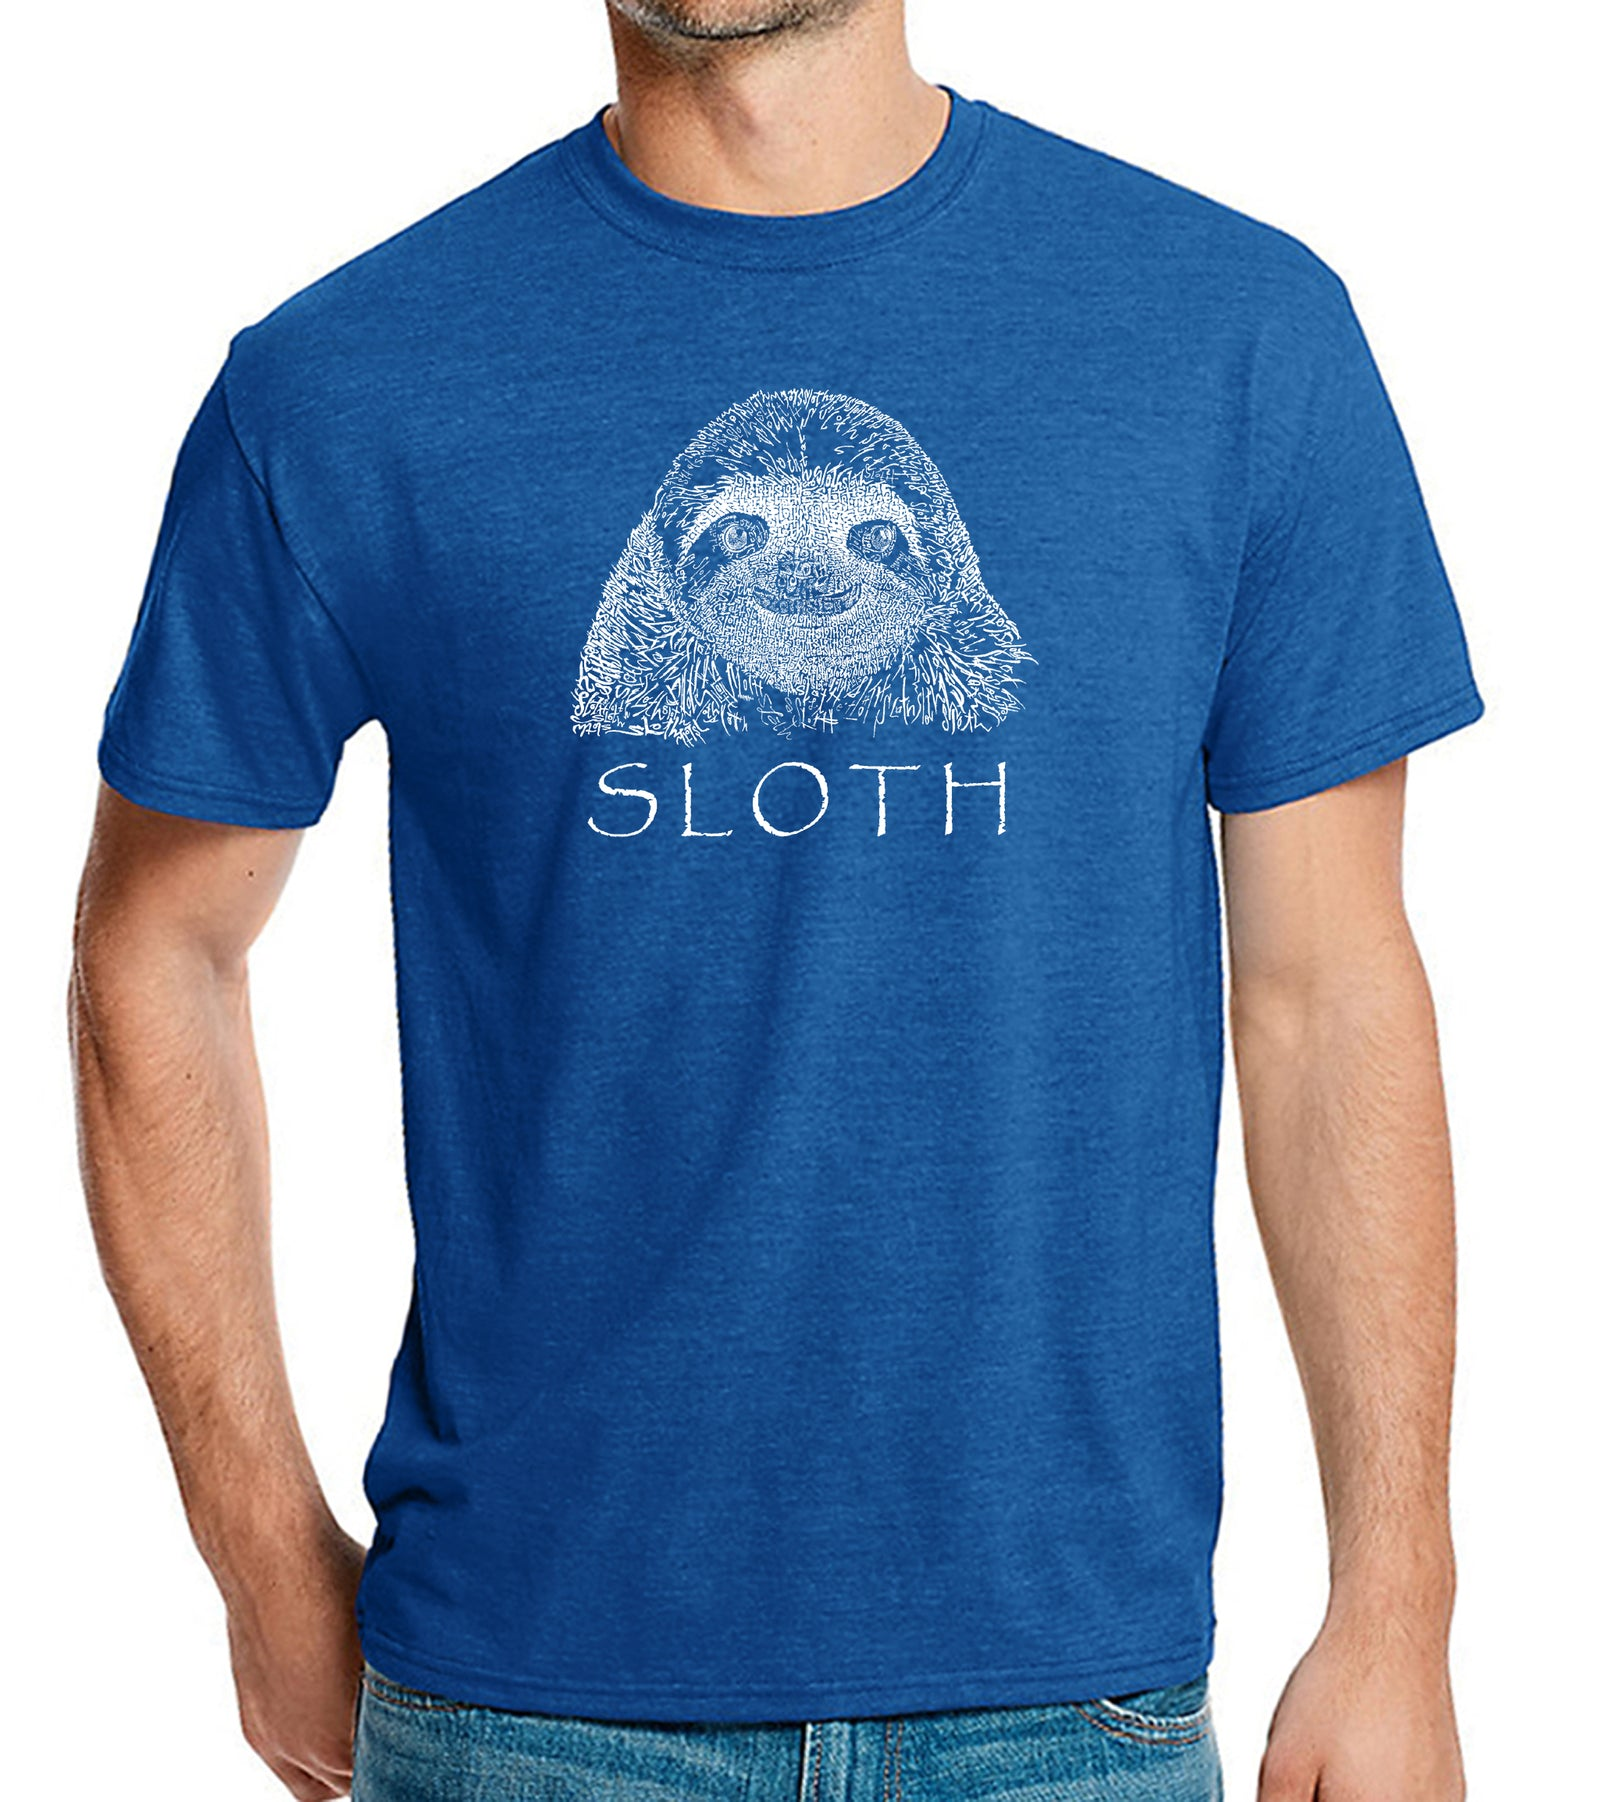 LA Pop Art Men's Premium Blend Word Art T-shirt - Sloth